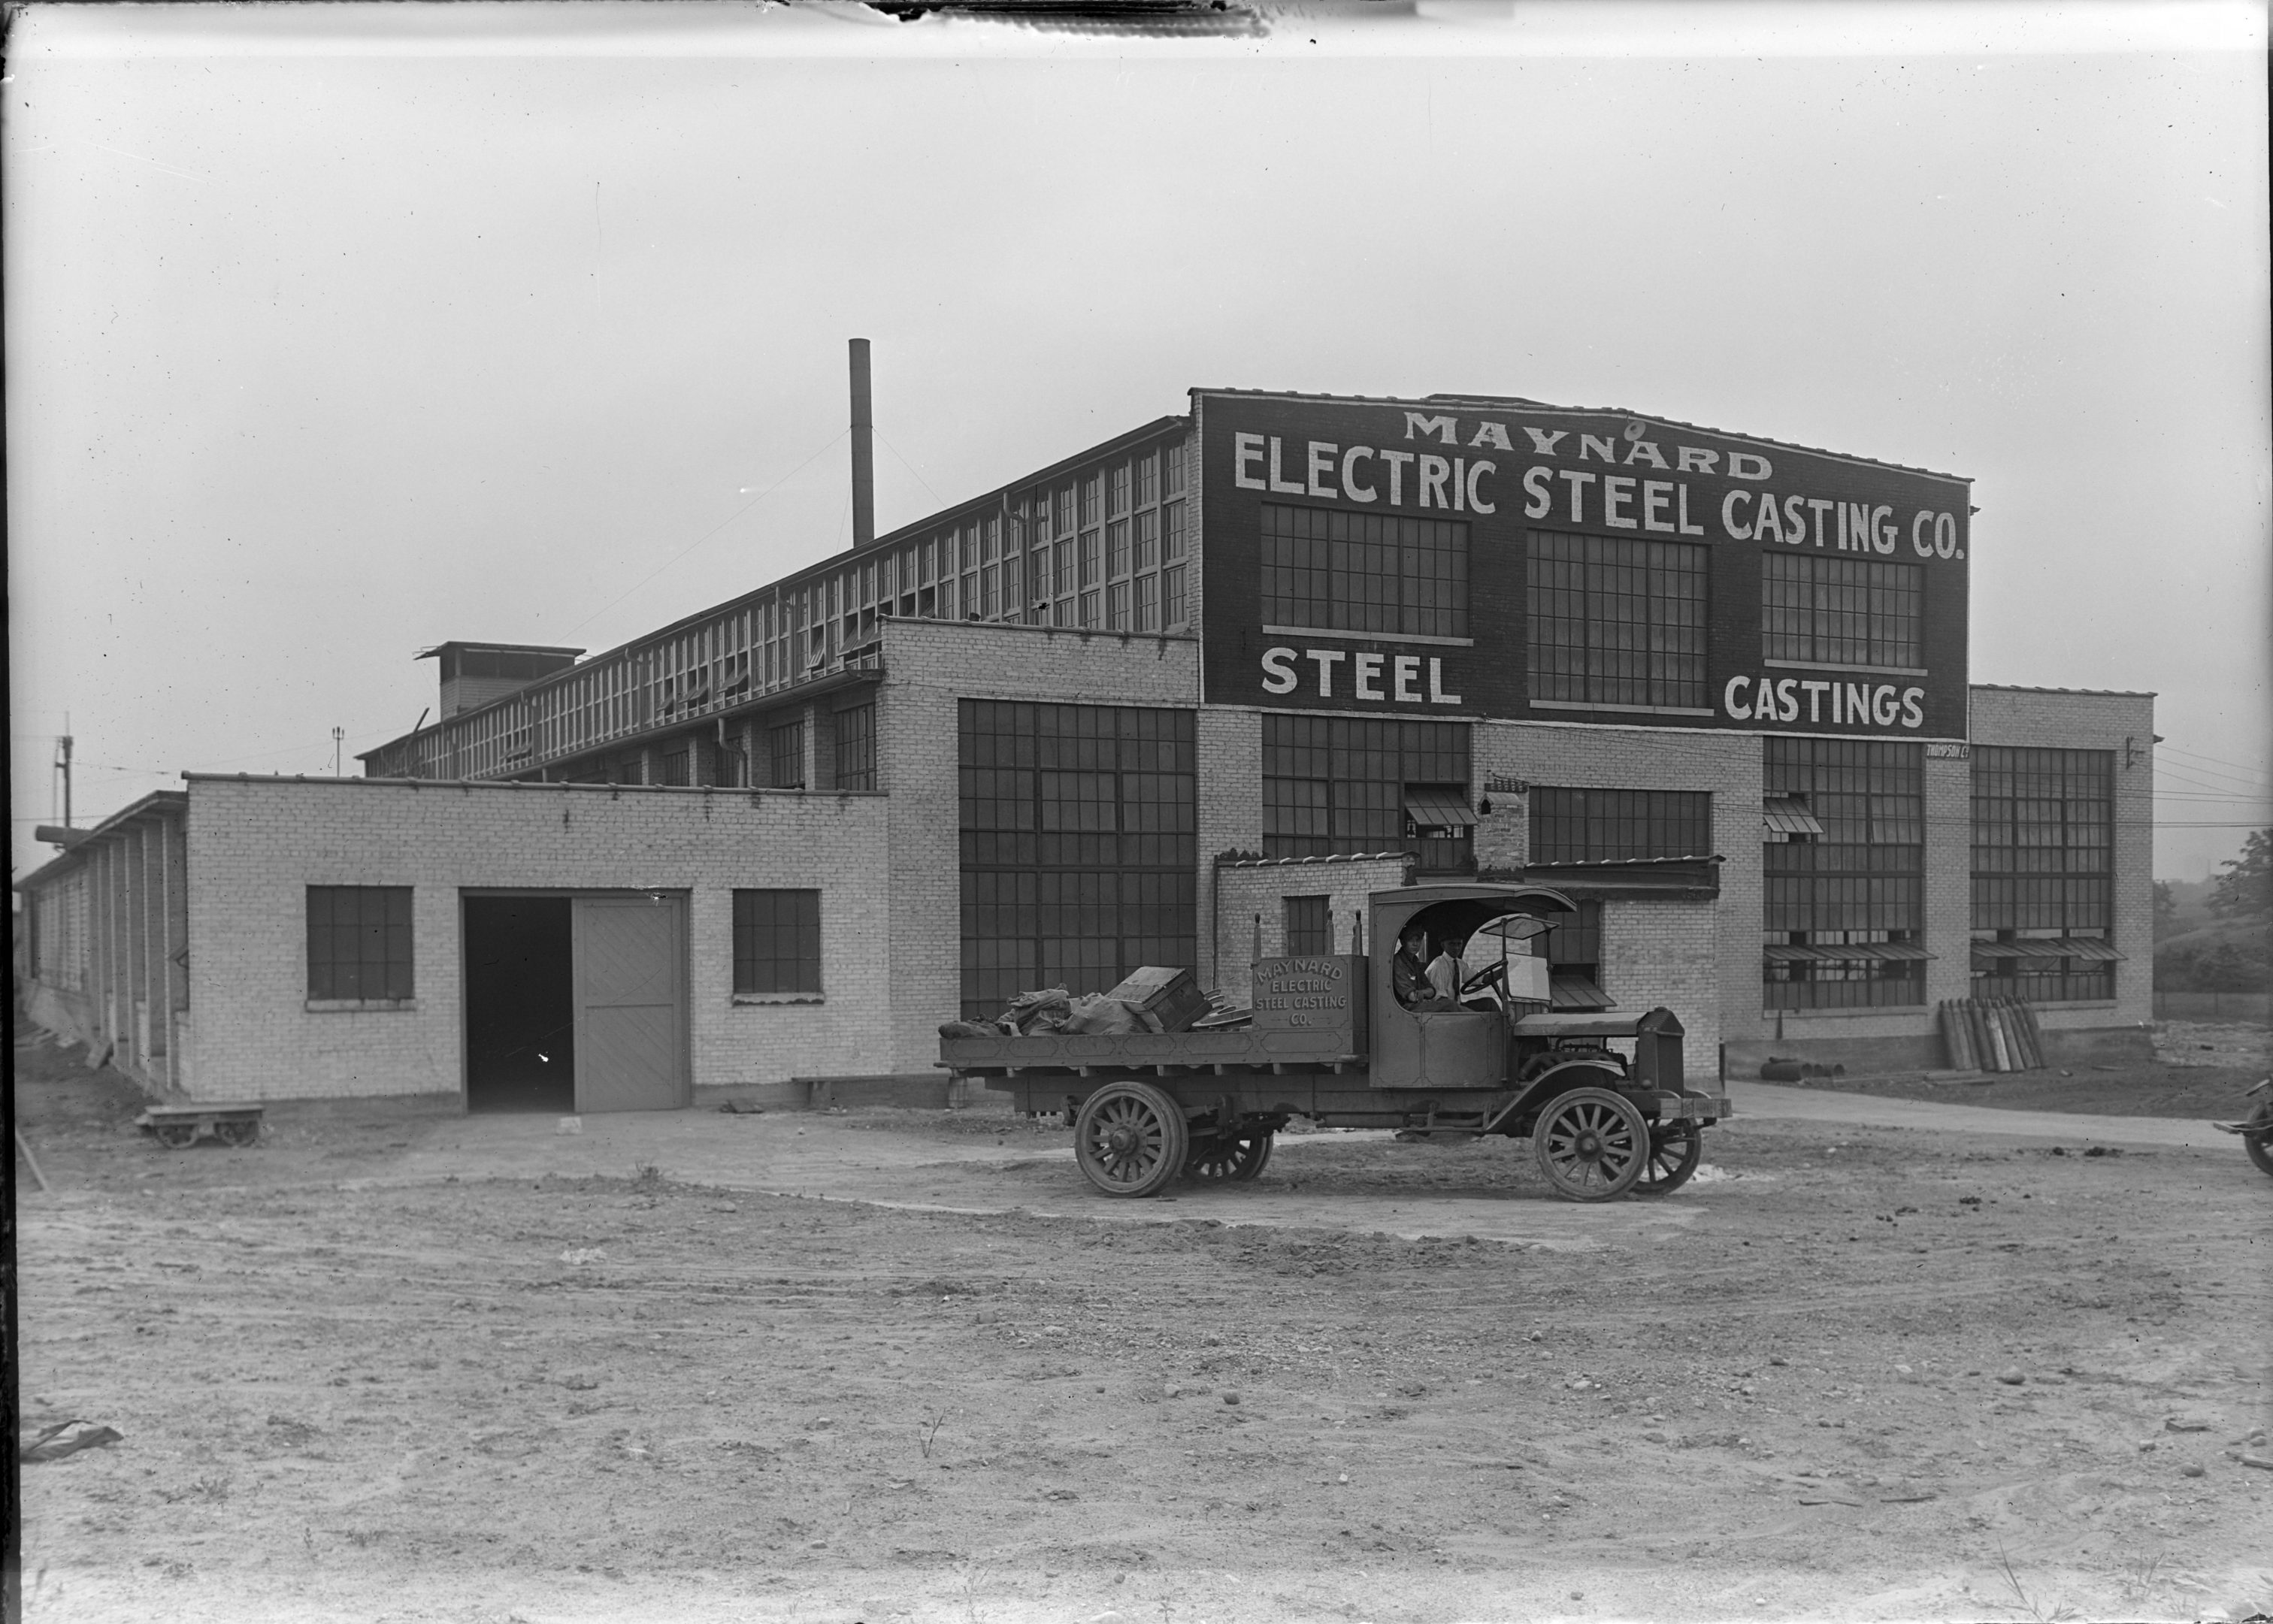 Manyard Electric Steel Casting has been located in Layton Park since World War I and continues its industrial operations in the neighborhood today.